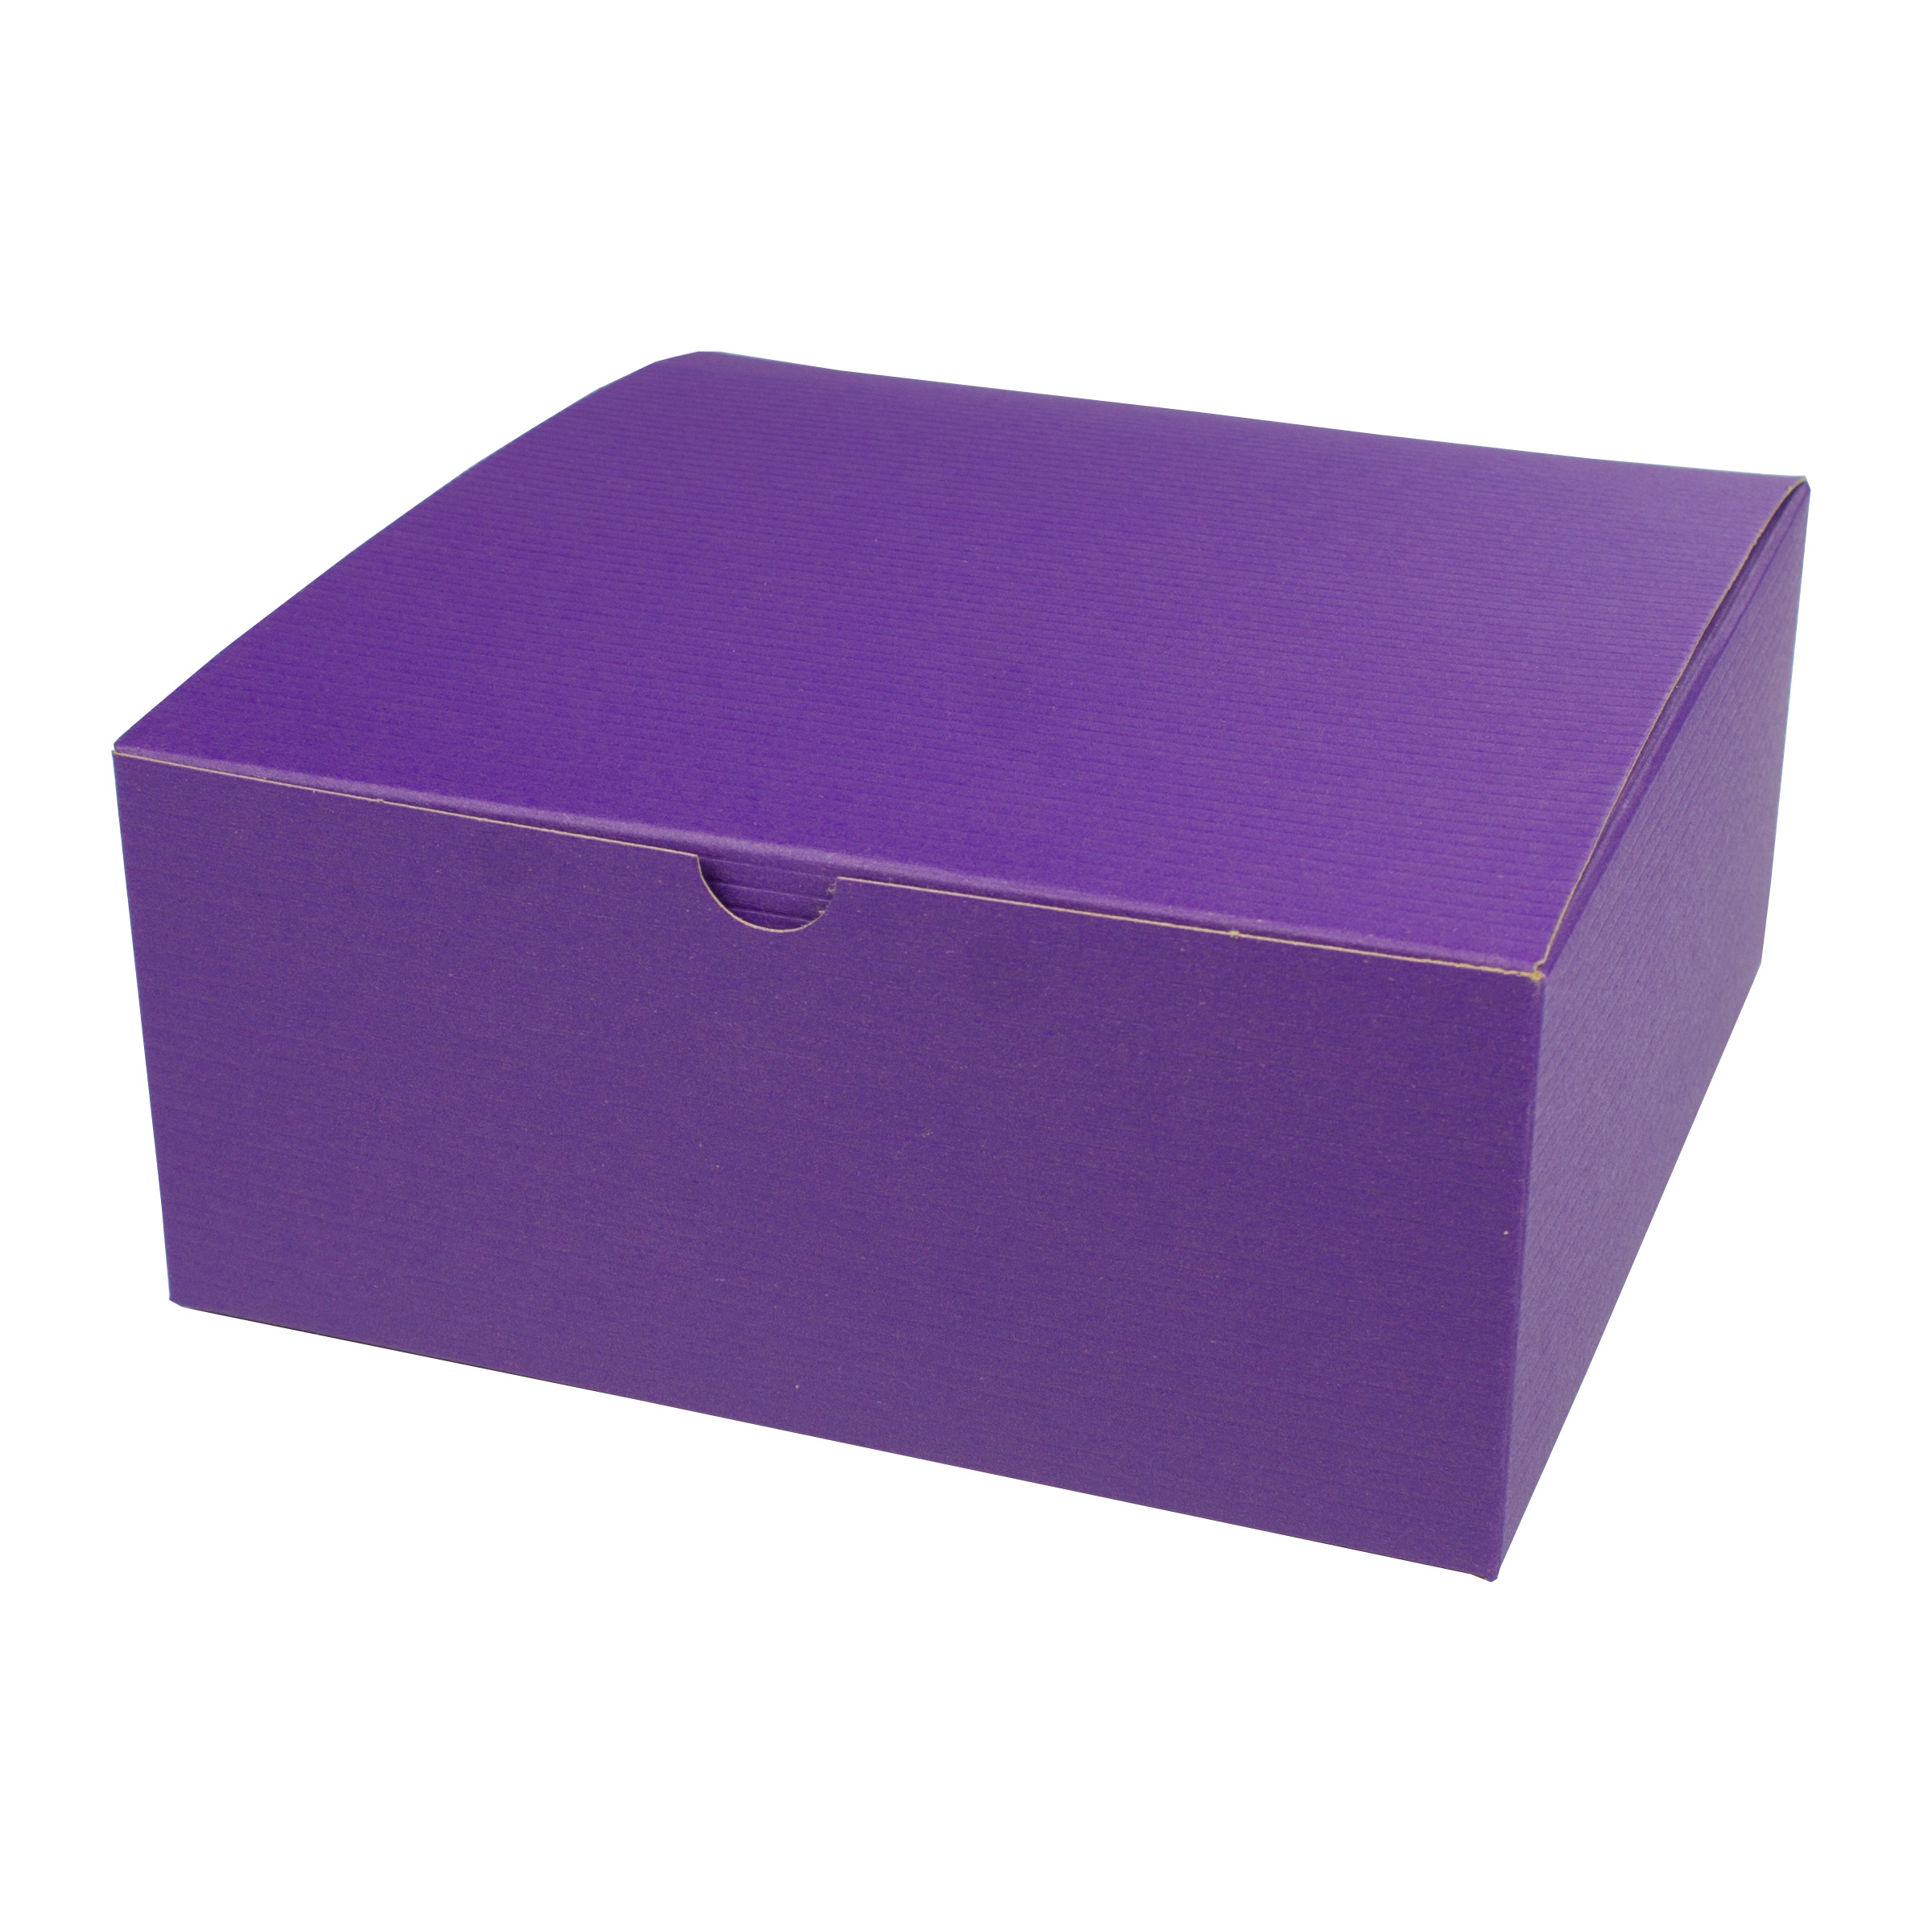 8 x 8 x 3.5 PURPLE TINTED TUCK-TOP GIFT BOXES